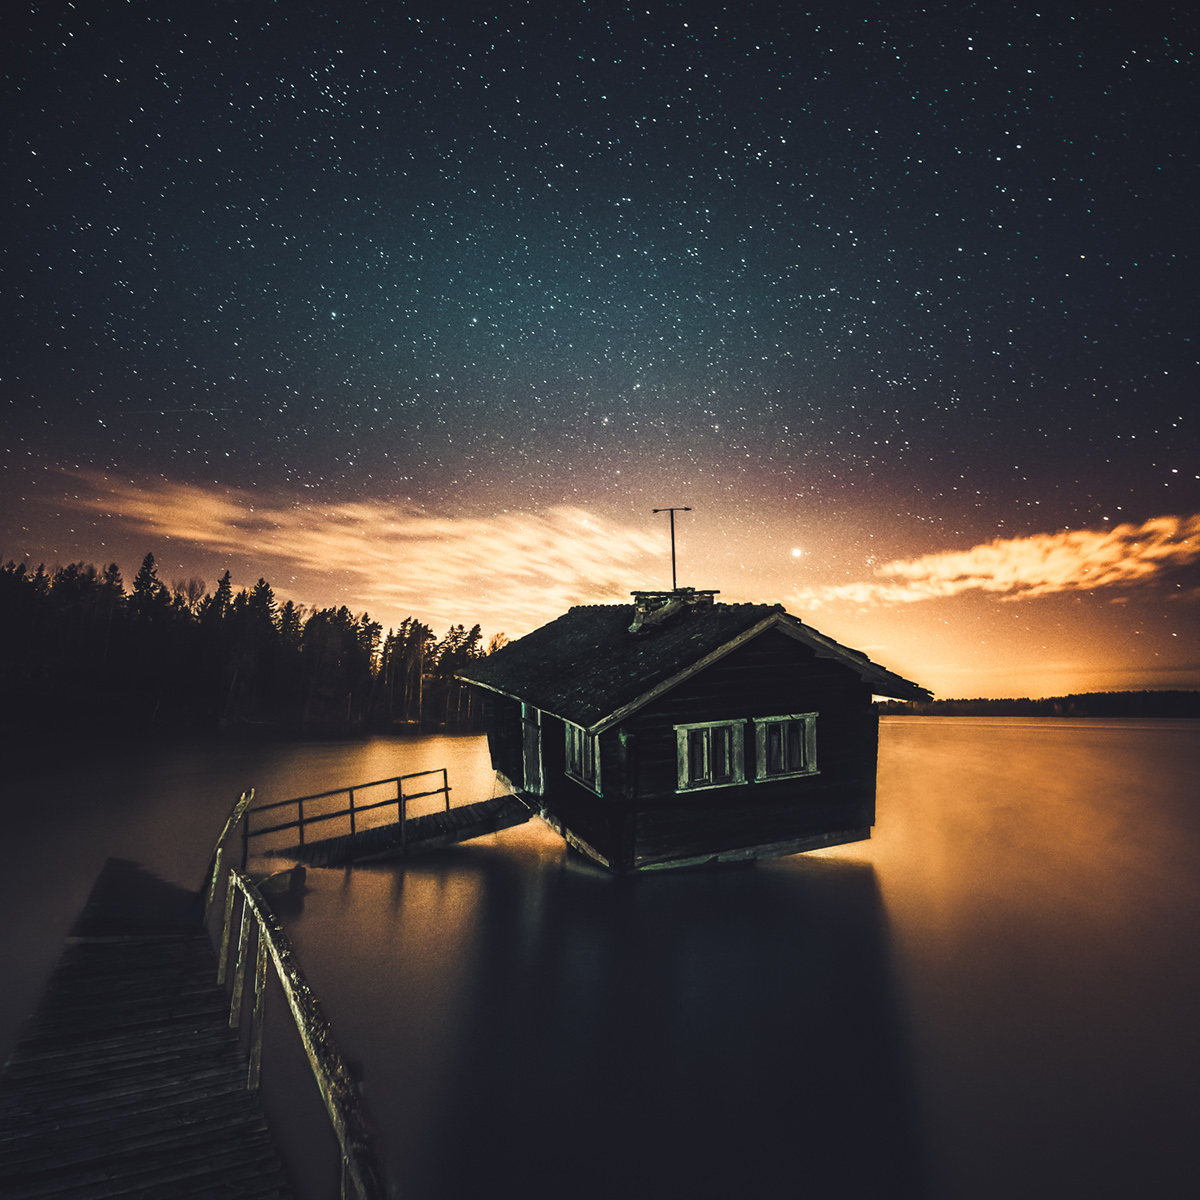 Mikko Lagerstedt - Invisible by day - 2